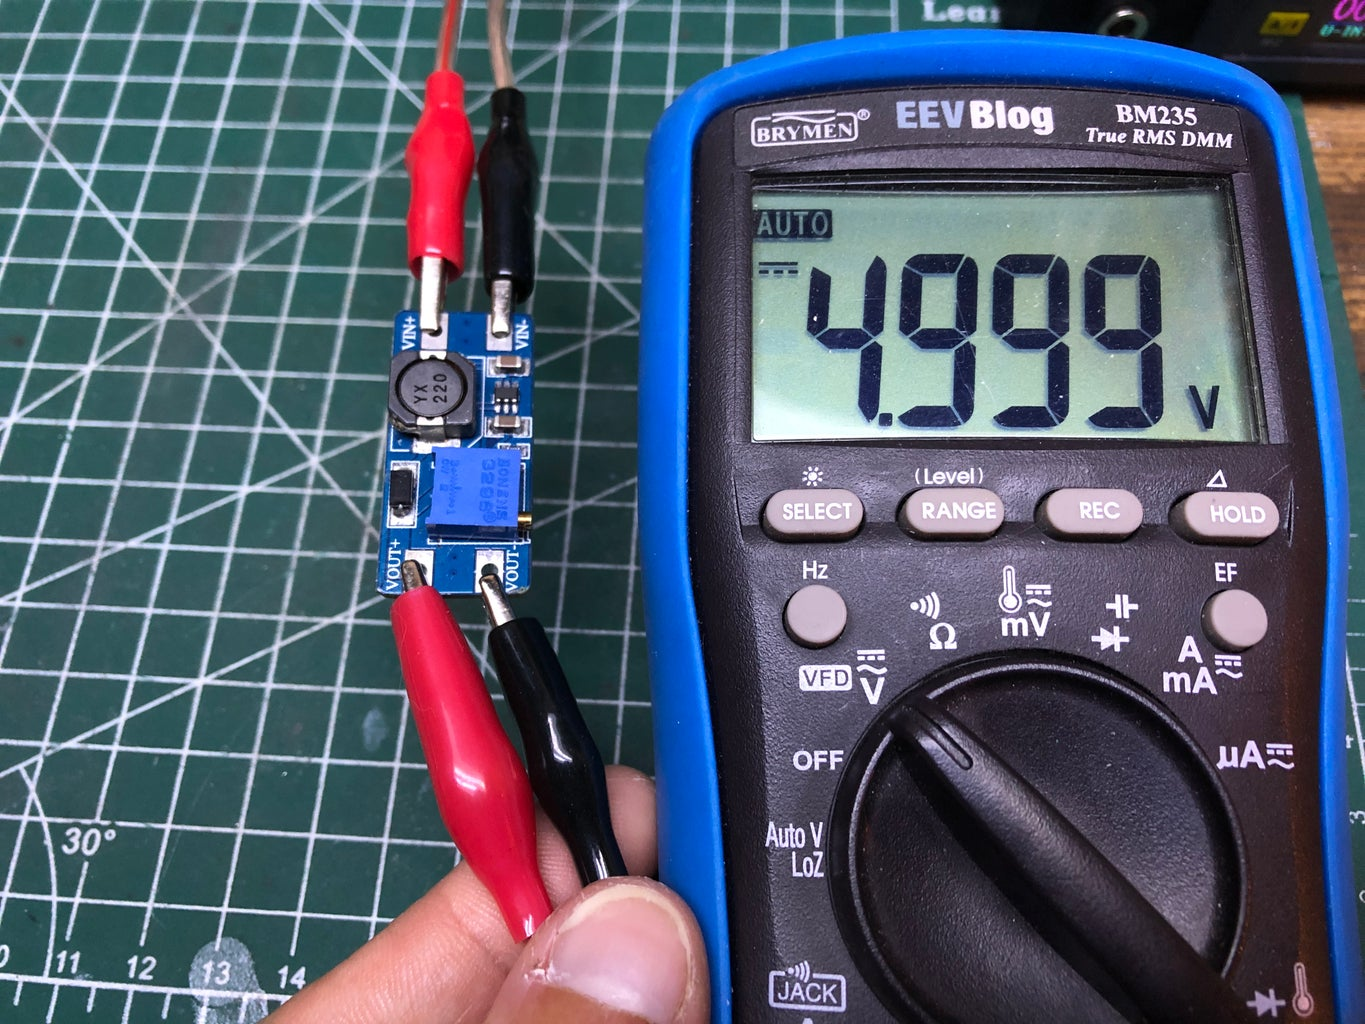 Power and Charging Circuit